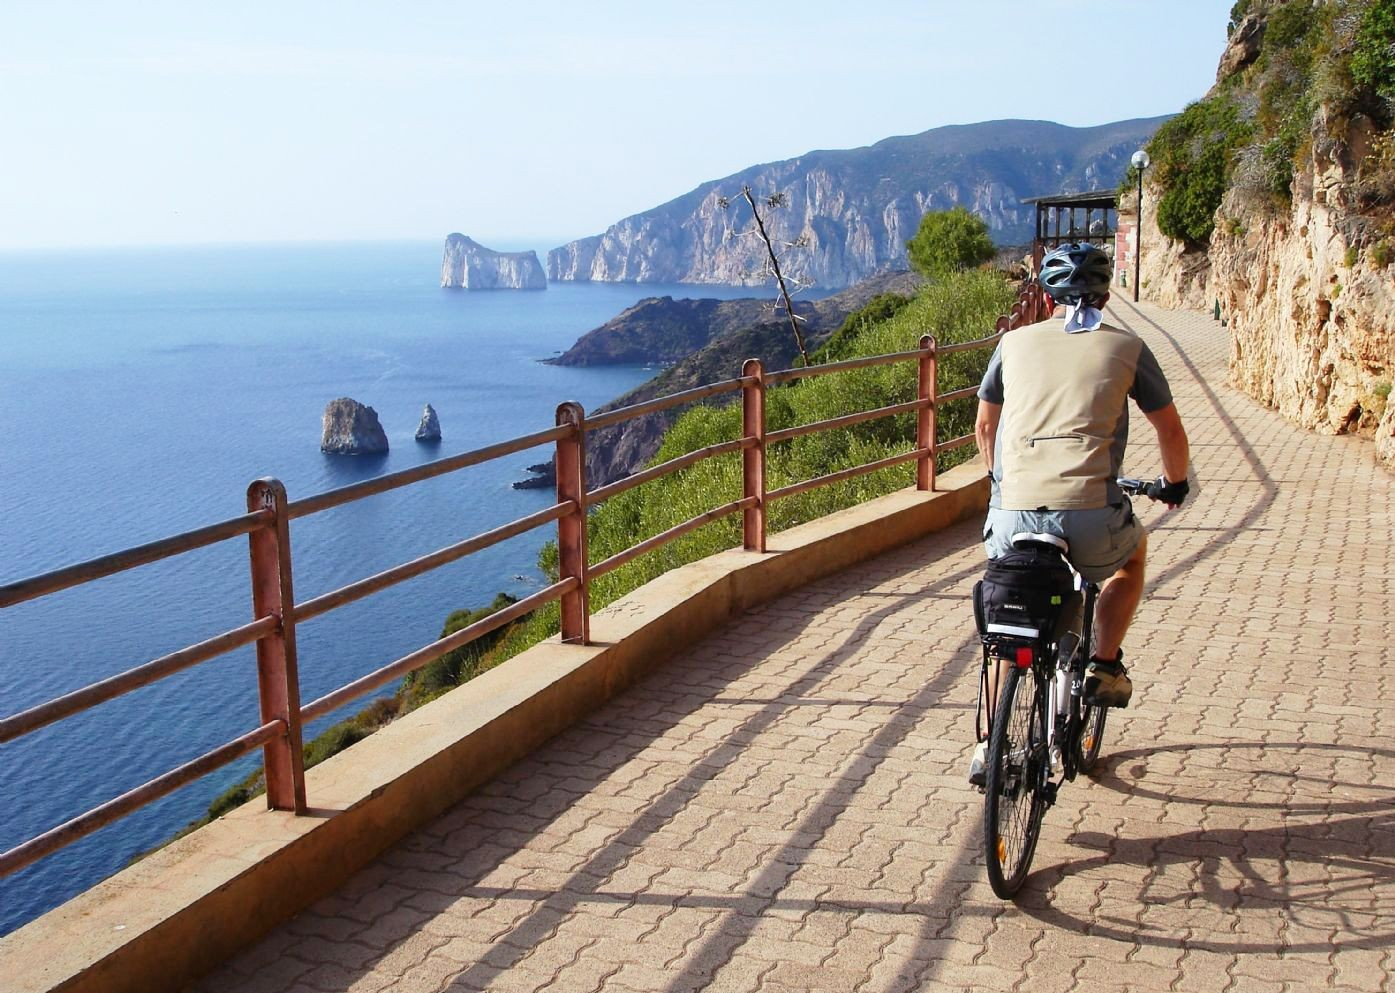 island-flavours-self-guided-cycling-holiday.jpg - Italy - Sardinia - Island Flavours - Self-Guided Leisure Cycling Holiday - Leisure Cycling